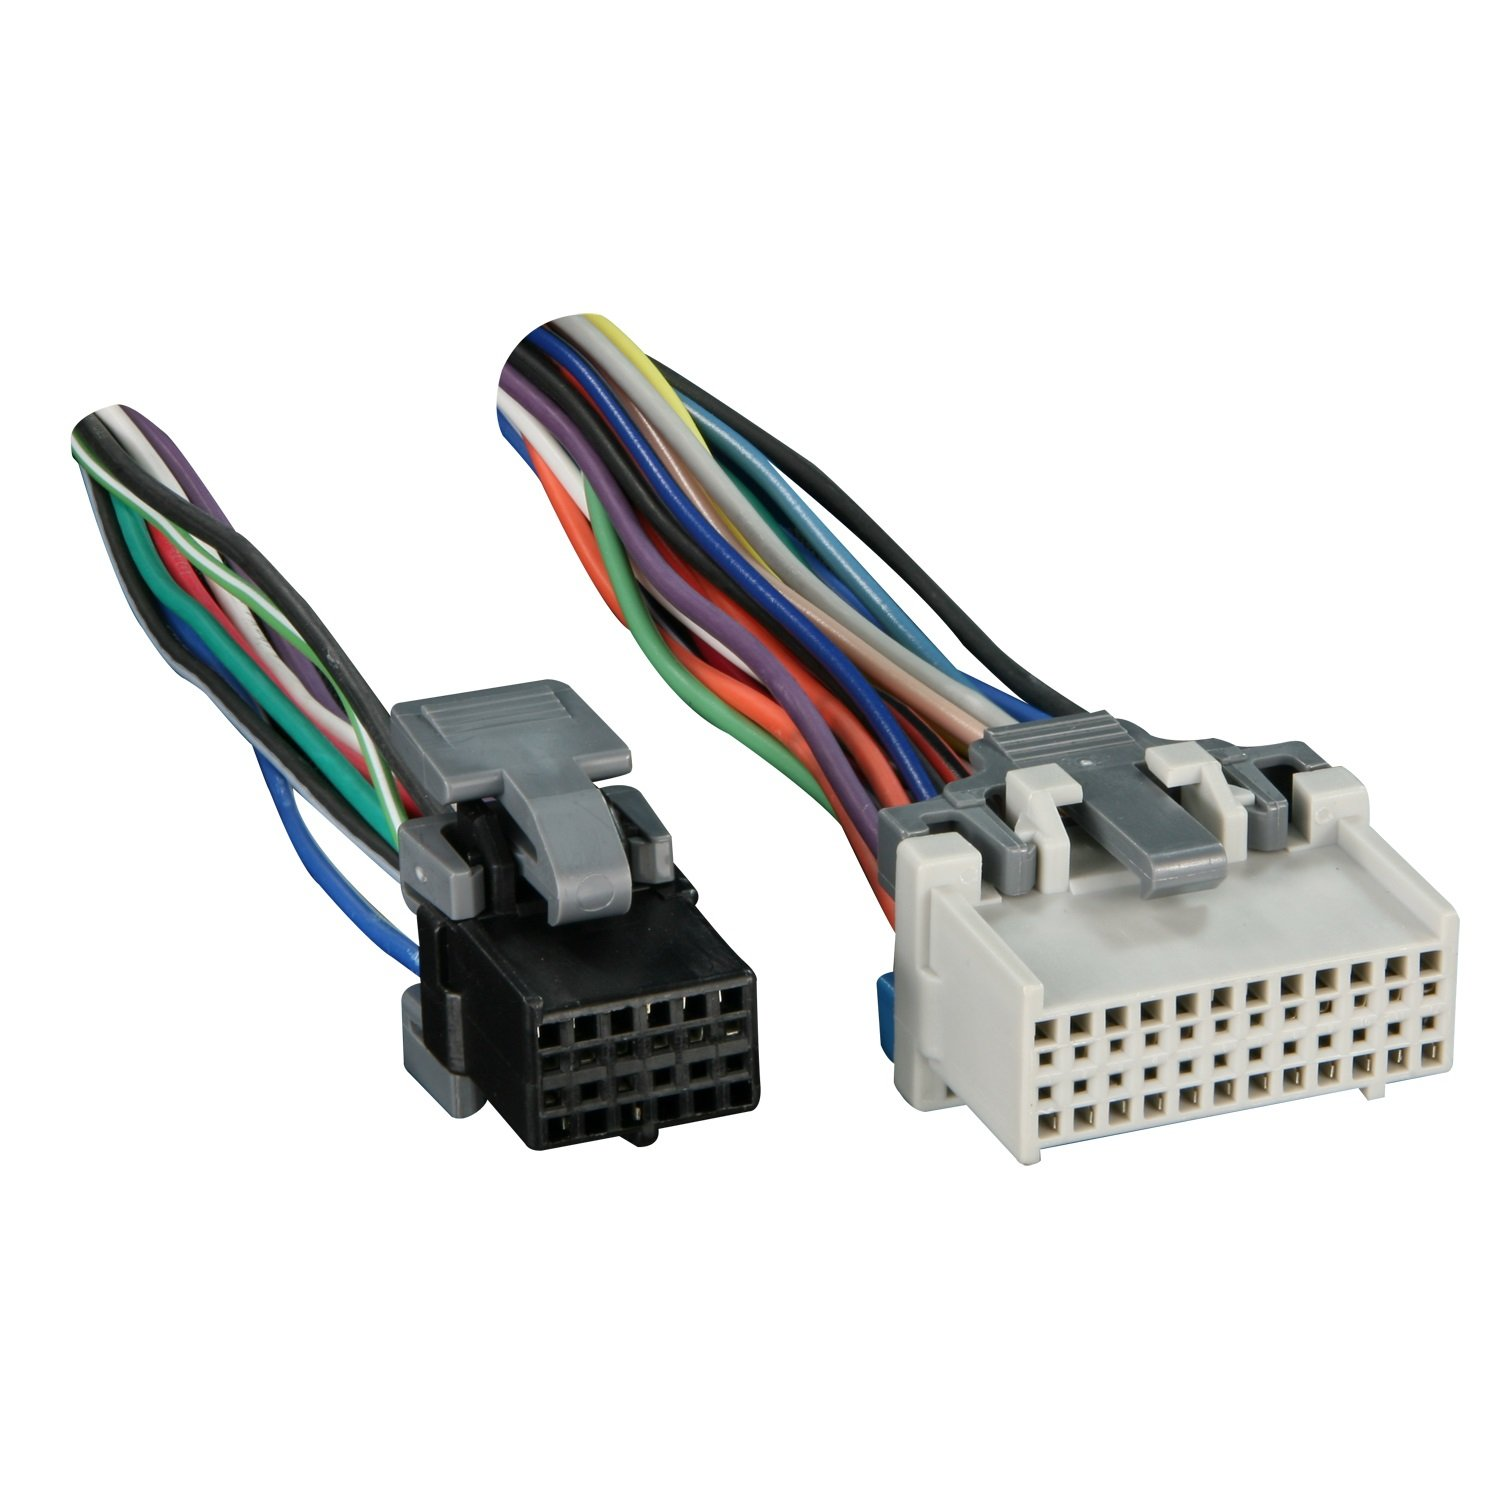 711log4bdML._SL1500_ amazon com metra turbowires 71 2003 1 wiring harness car electronics automotive wiring harness repair companies at reclaimingppi.co